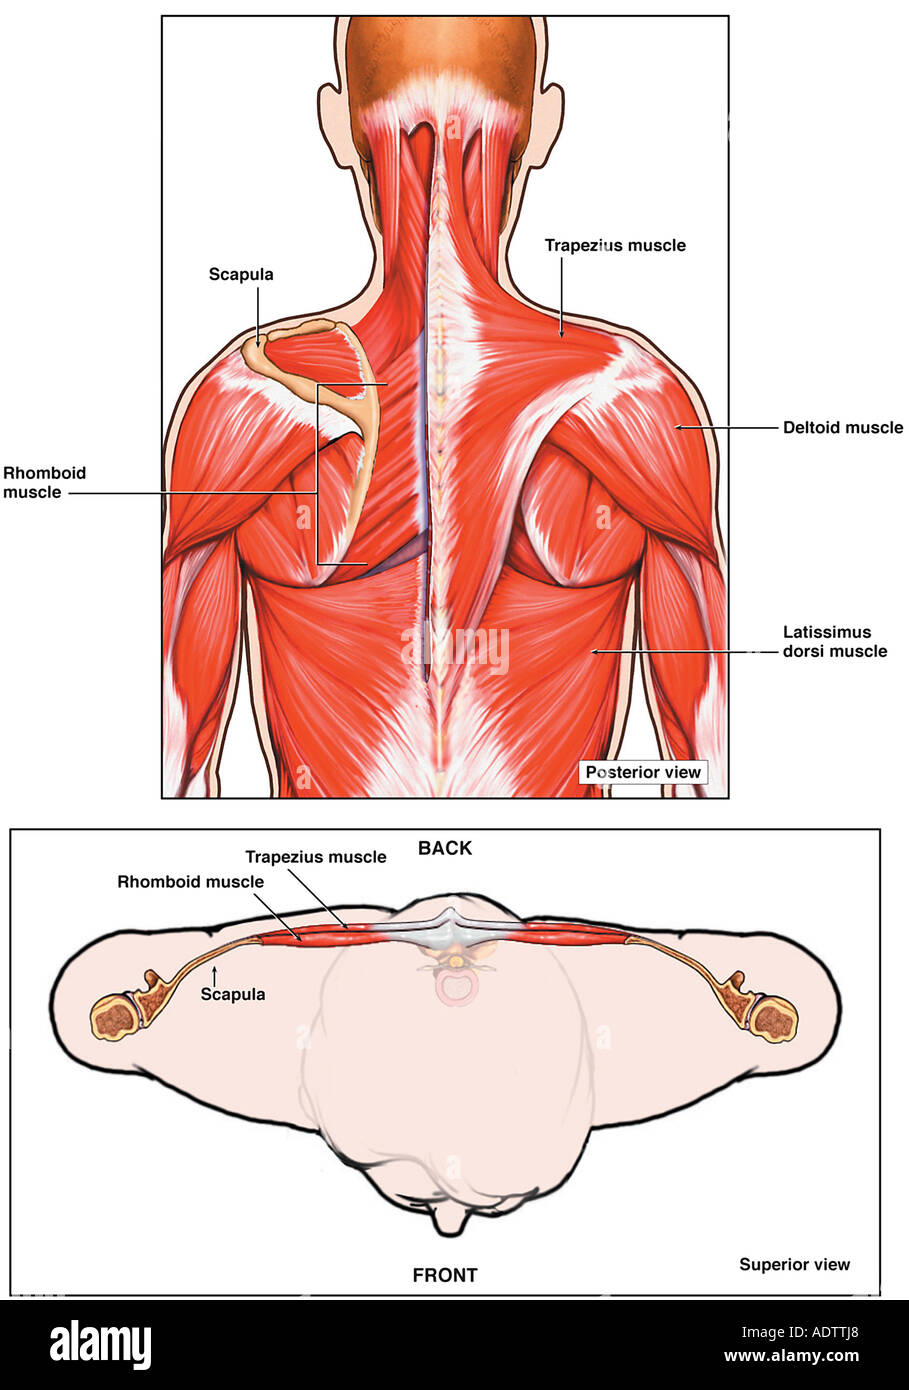 Posterior Deltoid Stock Photos & Posterior Deltoid Stock Images - Alamy